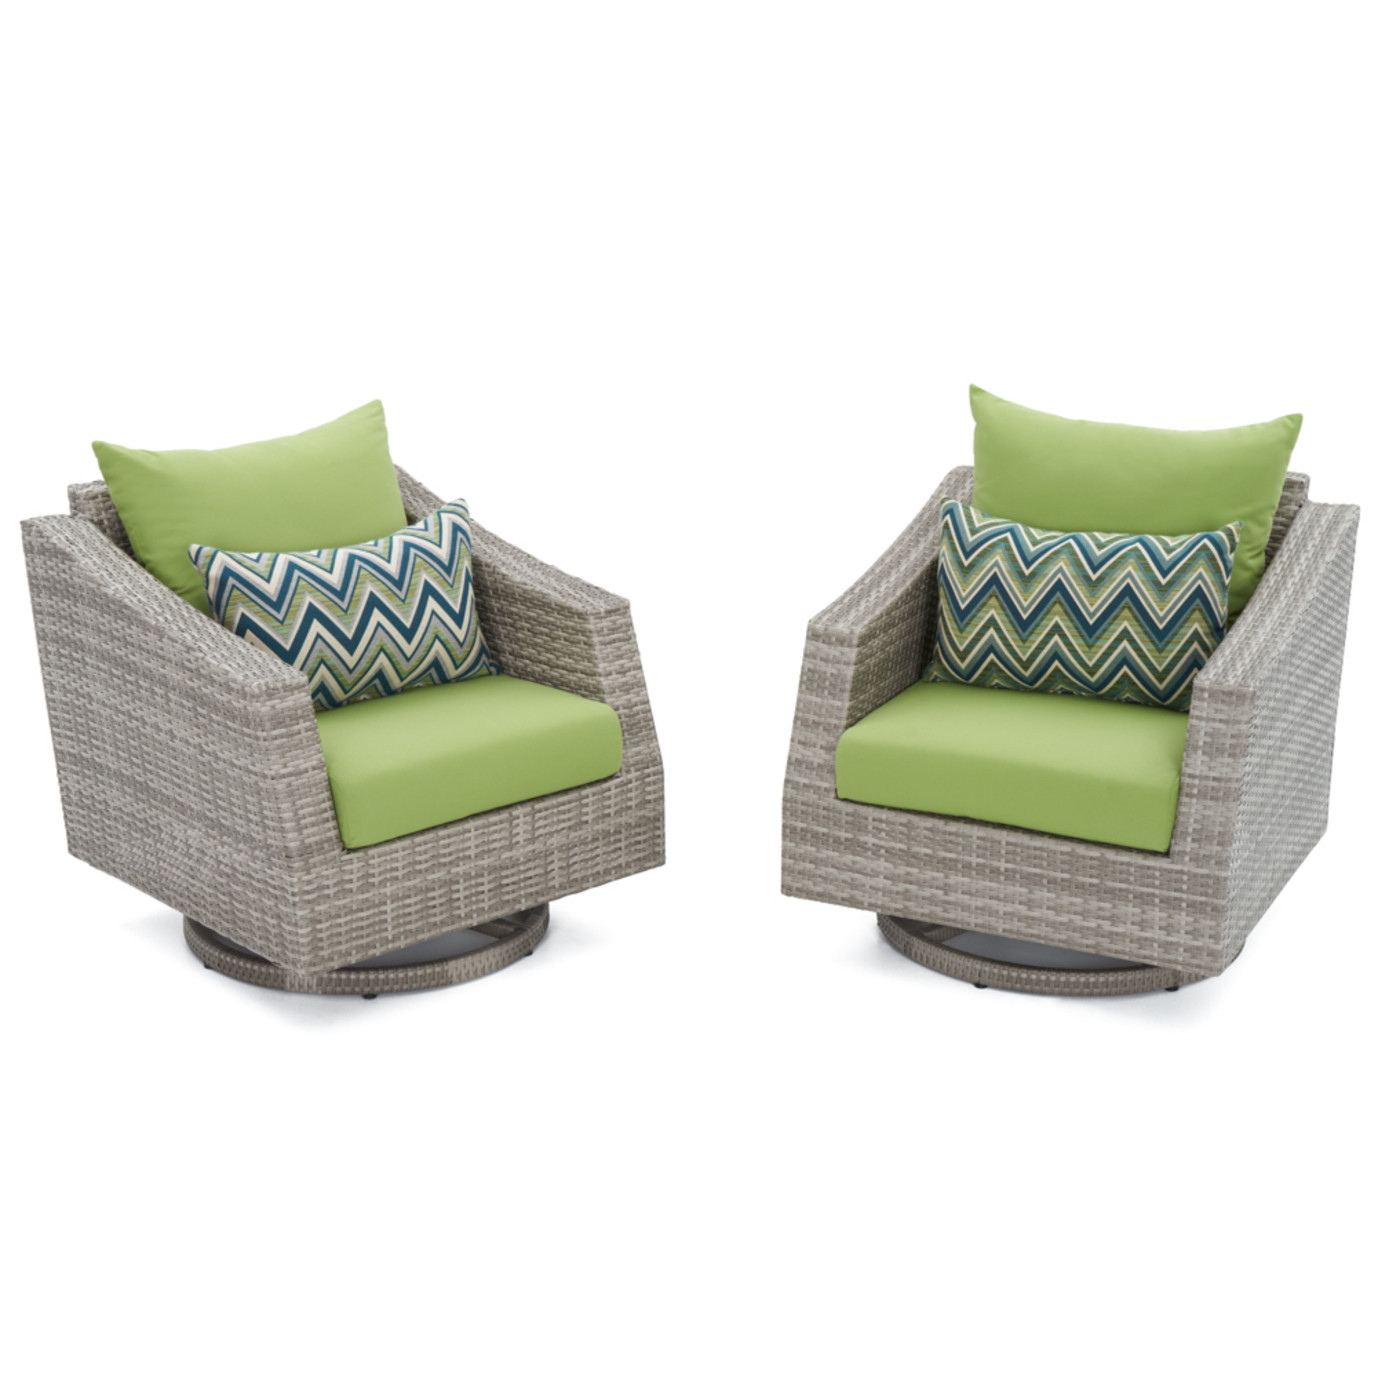 Cannes™ Motion Club Chairs - Ginkgo Green